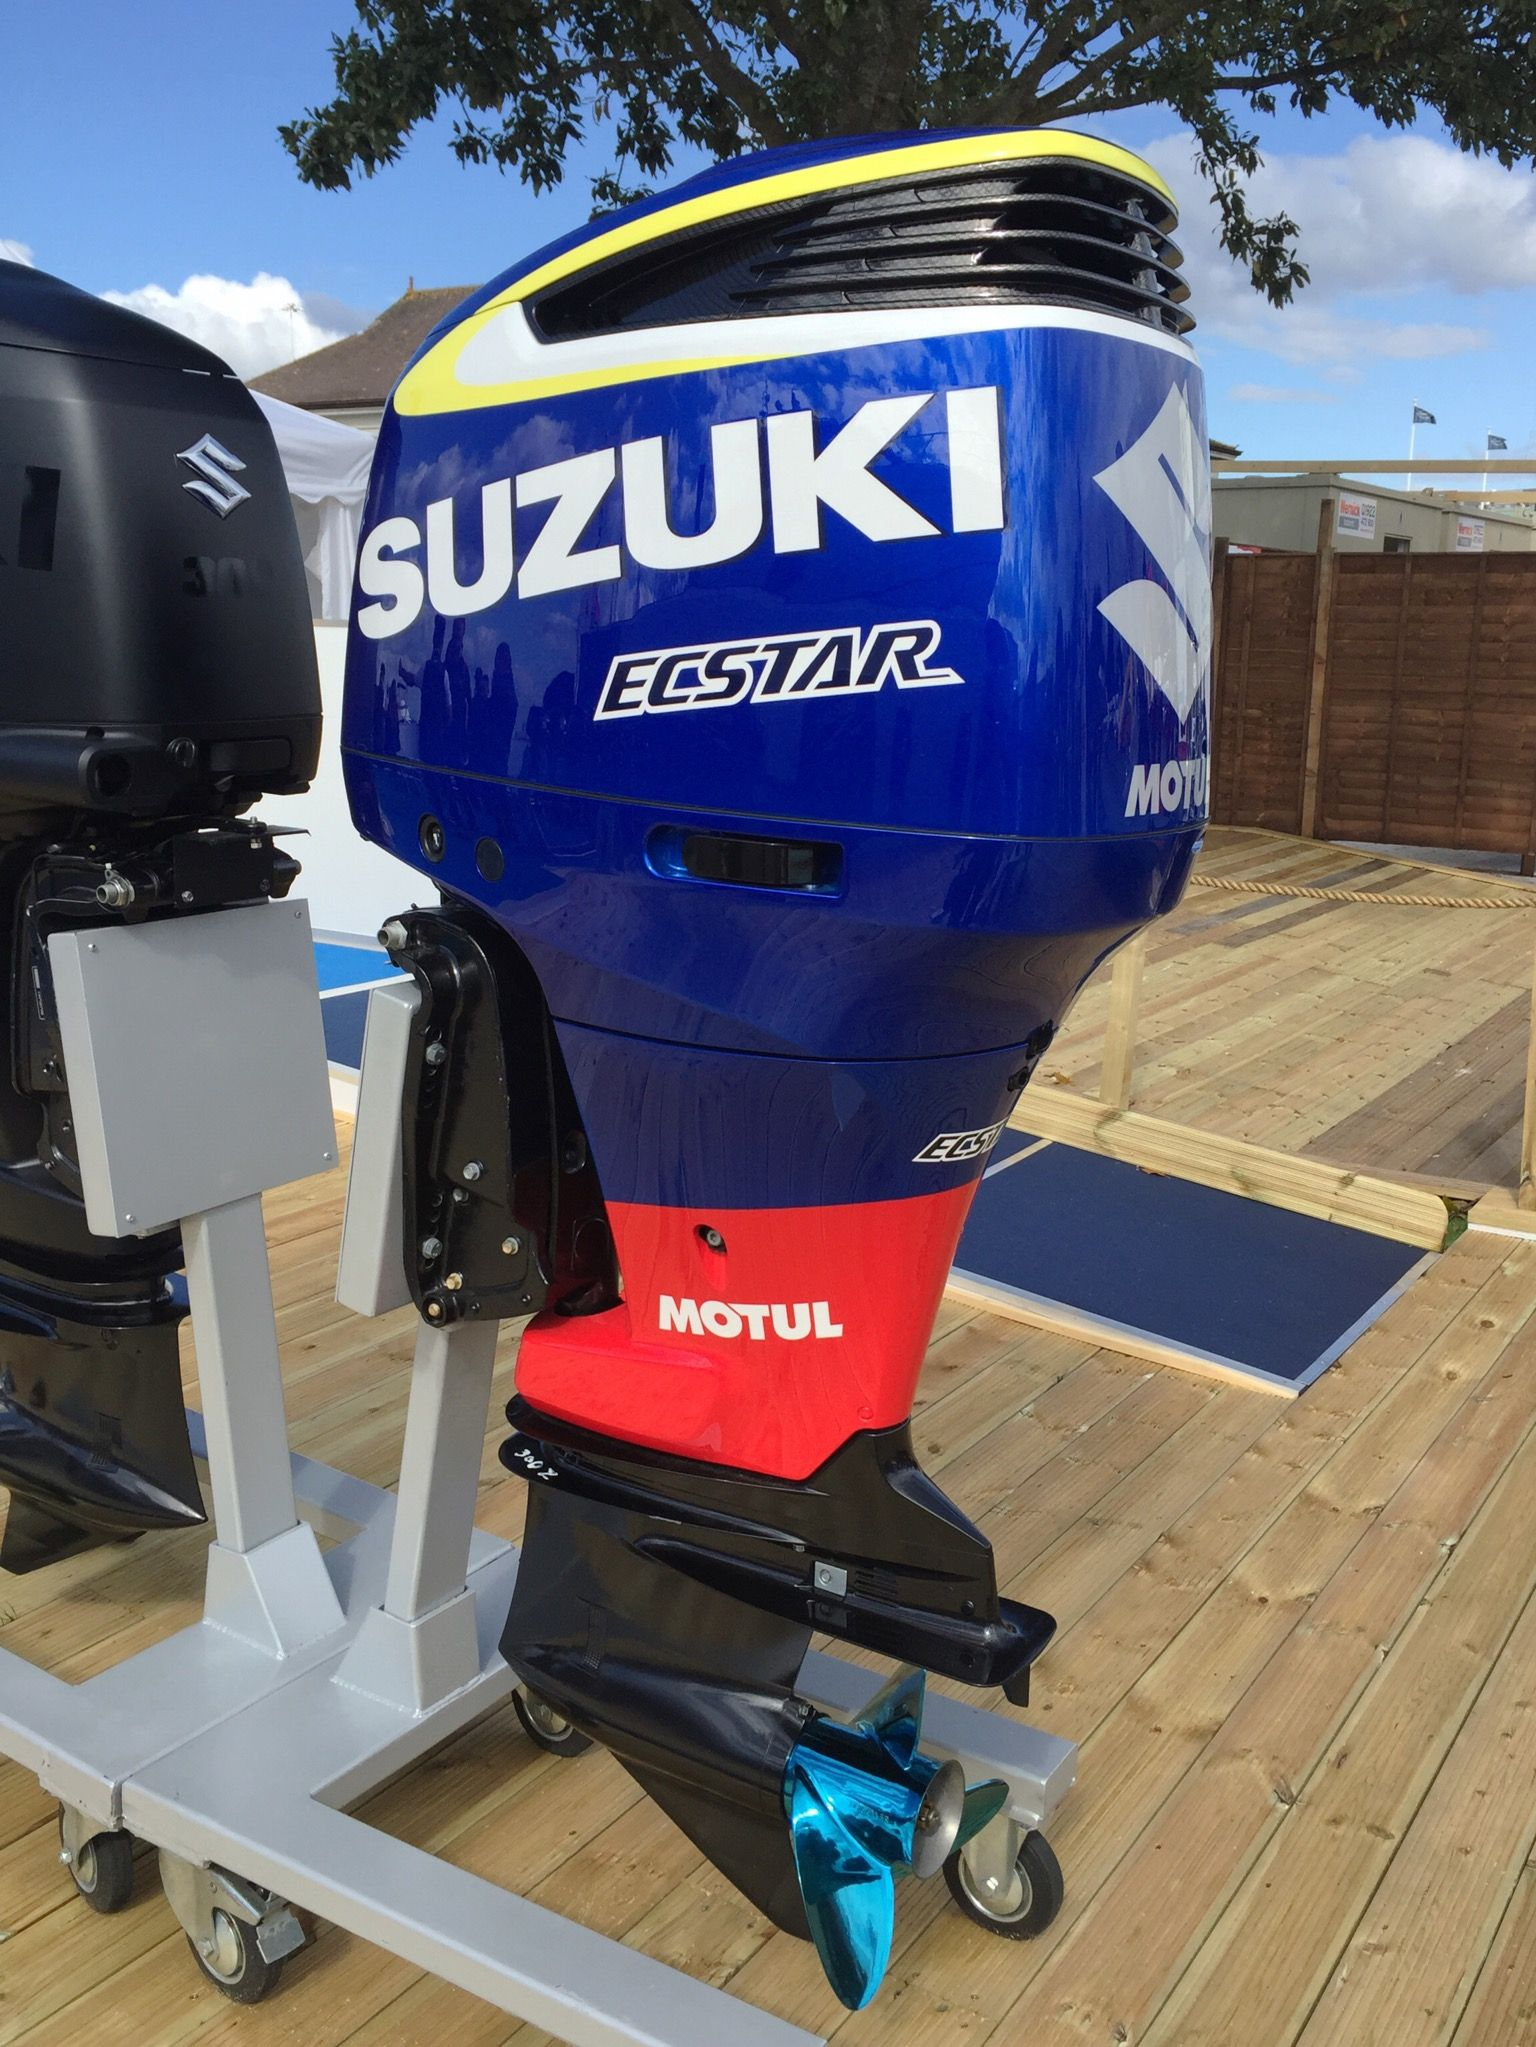 Suzuki Rr 300 Racing Outboard Custom Paint Bass Boat Boat Wraps Boat Engine